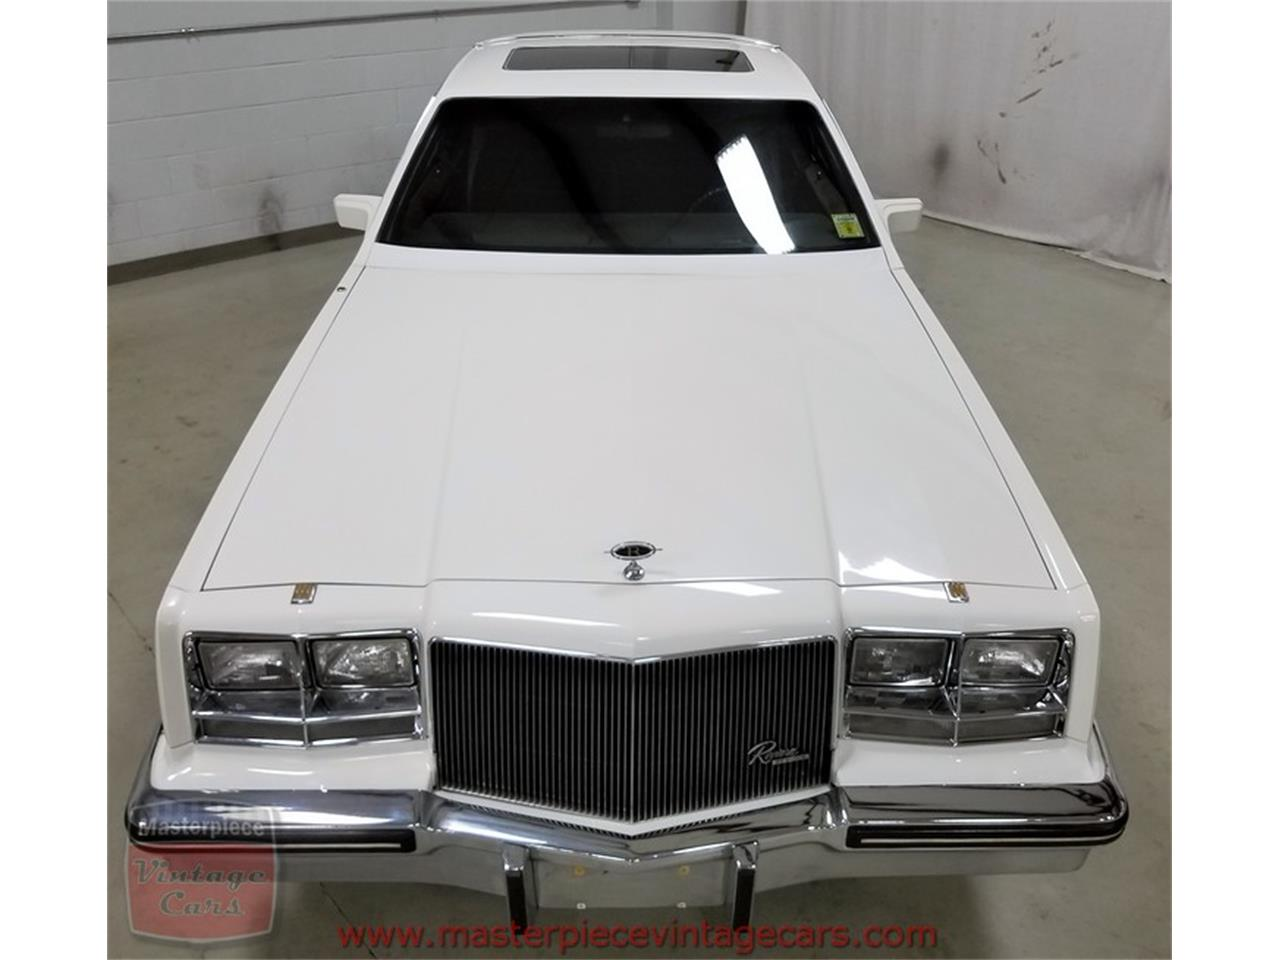 Large Picture of '85 Buick Riviera located in Indiana Offered by Masterpiece Vintage Cars - L82V